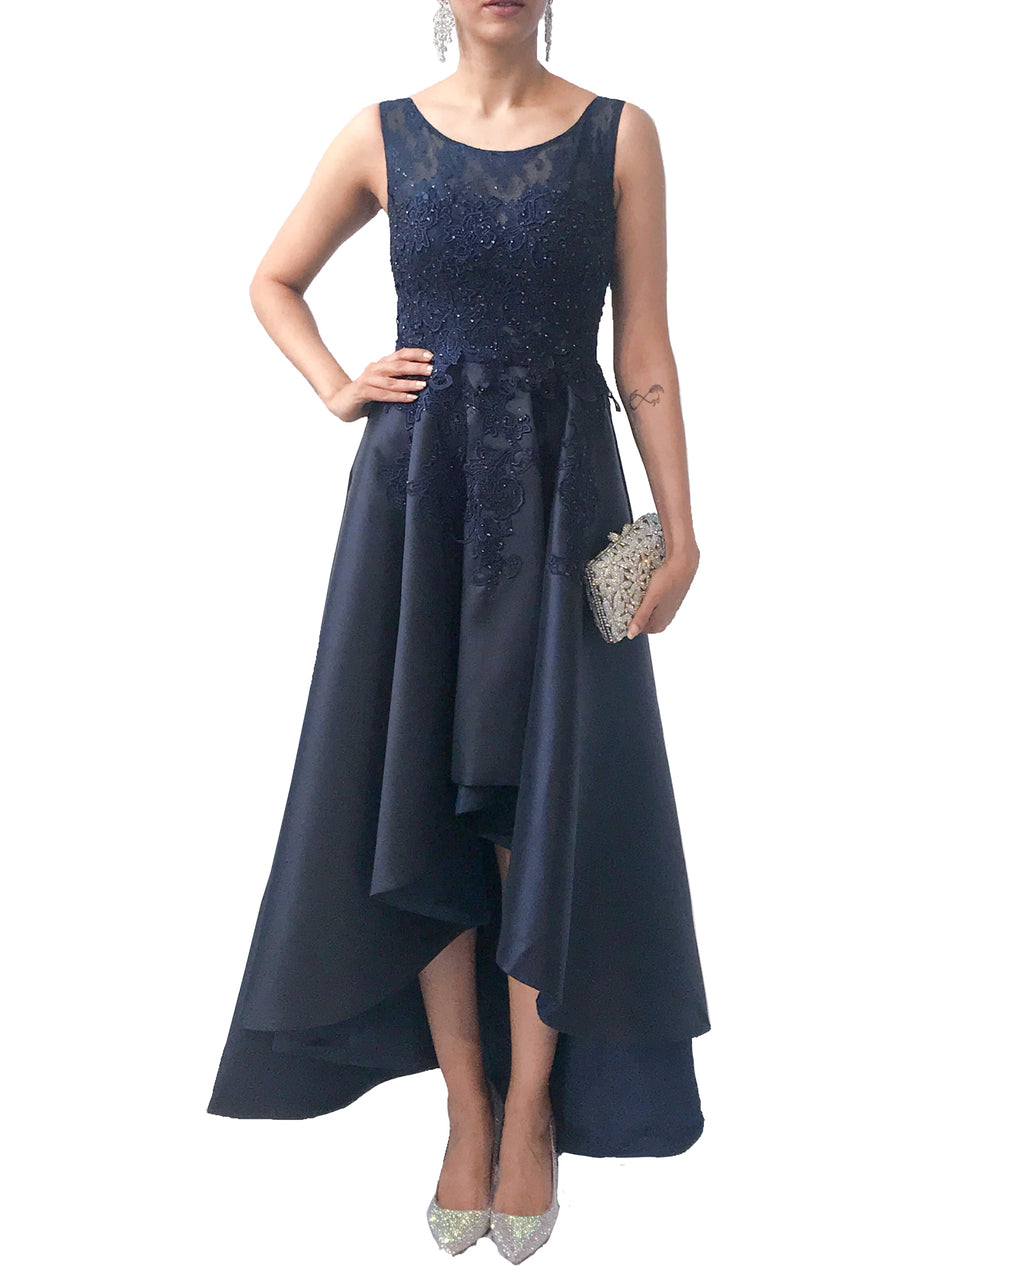 Lace Embroidered High Low Draped Gown - Prive - Covetella Dress Rentals